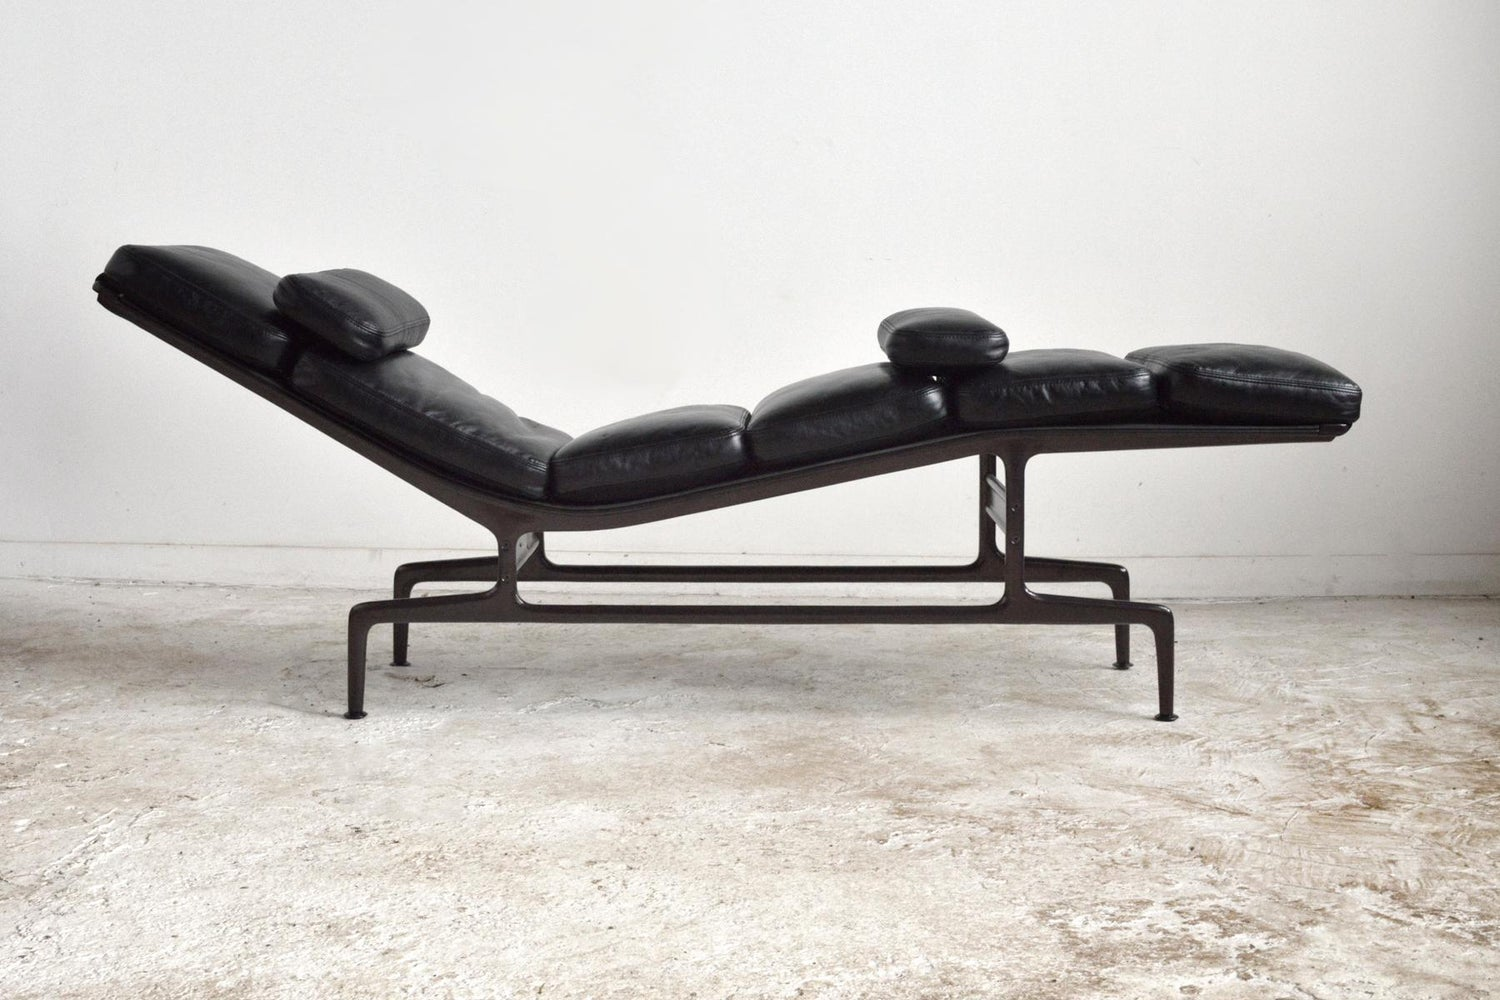 Eames Billy Wilder Chaise Lounge By Herman Miller For Sale At 1stdibs